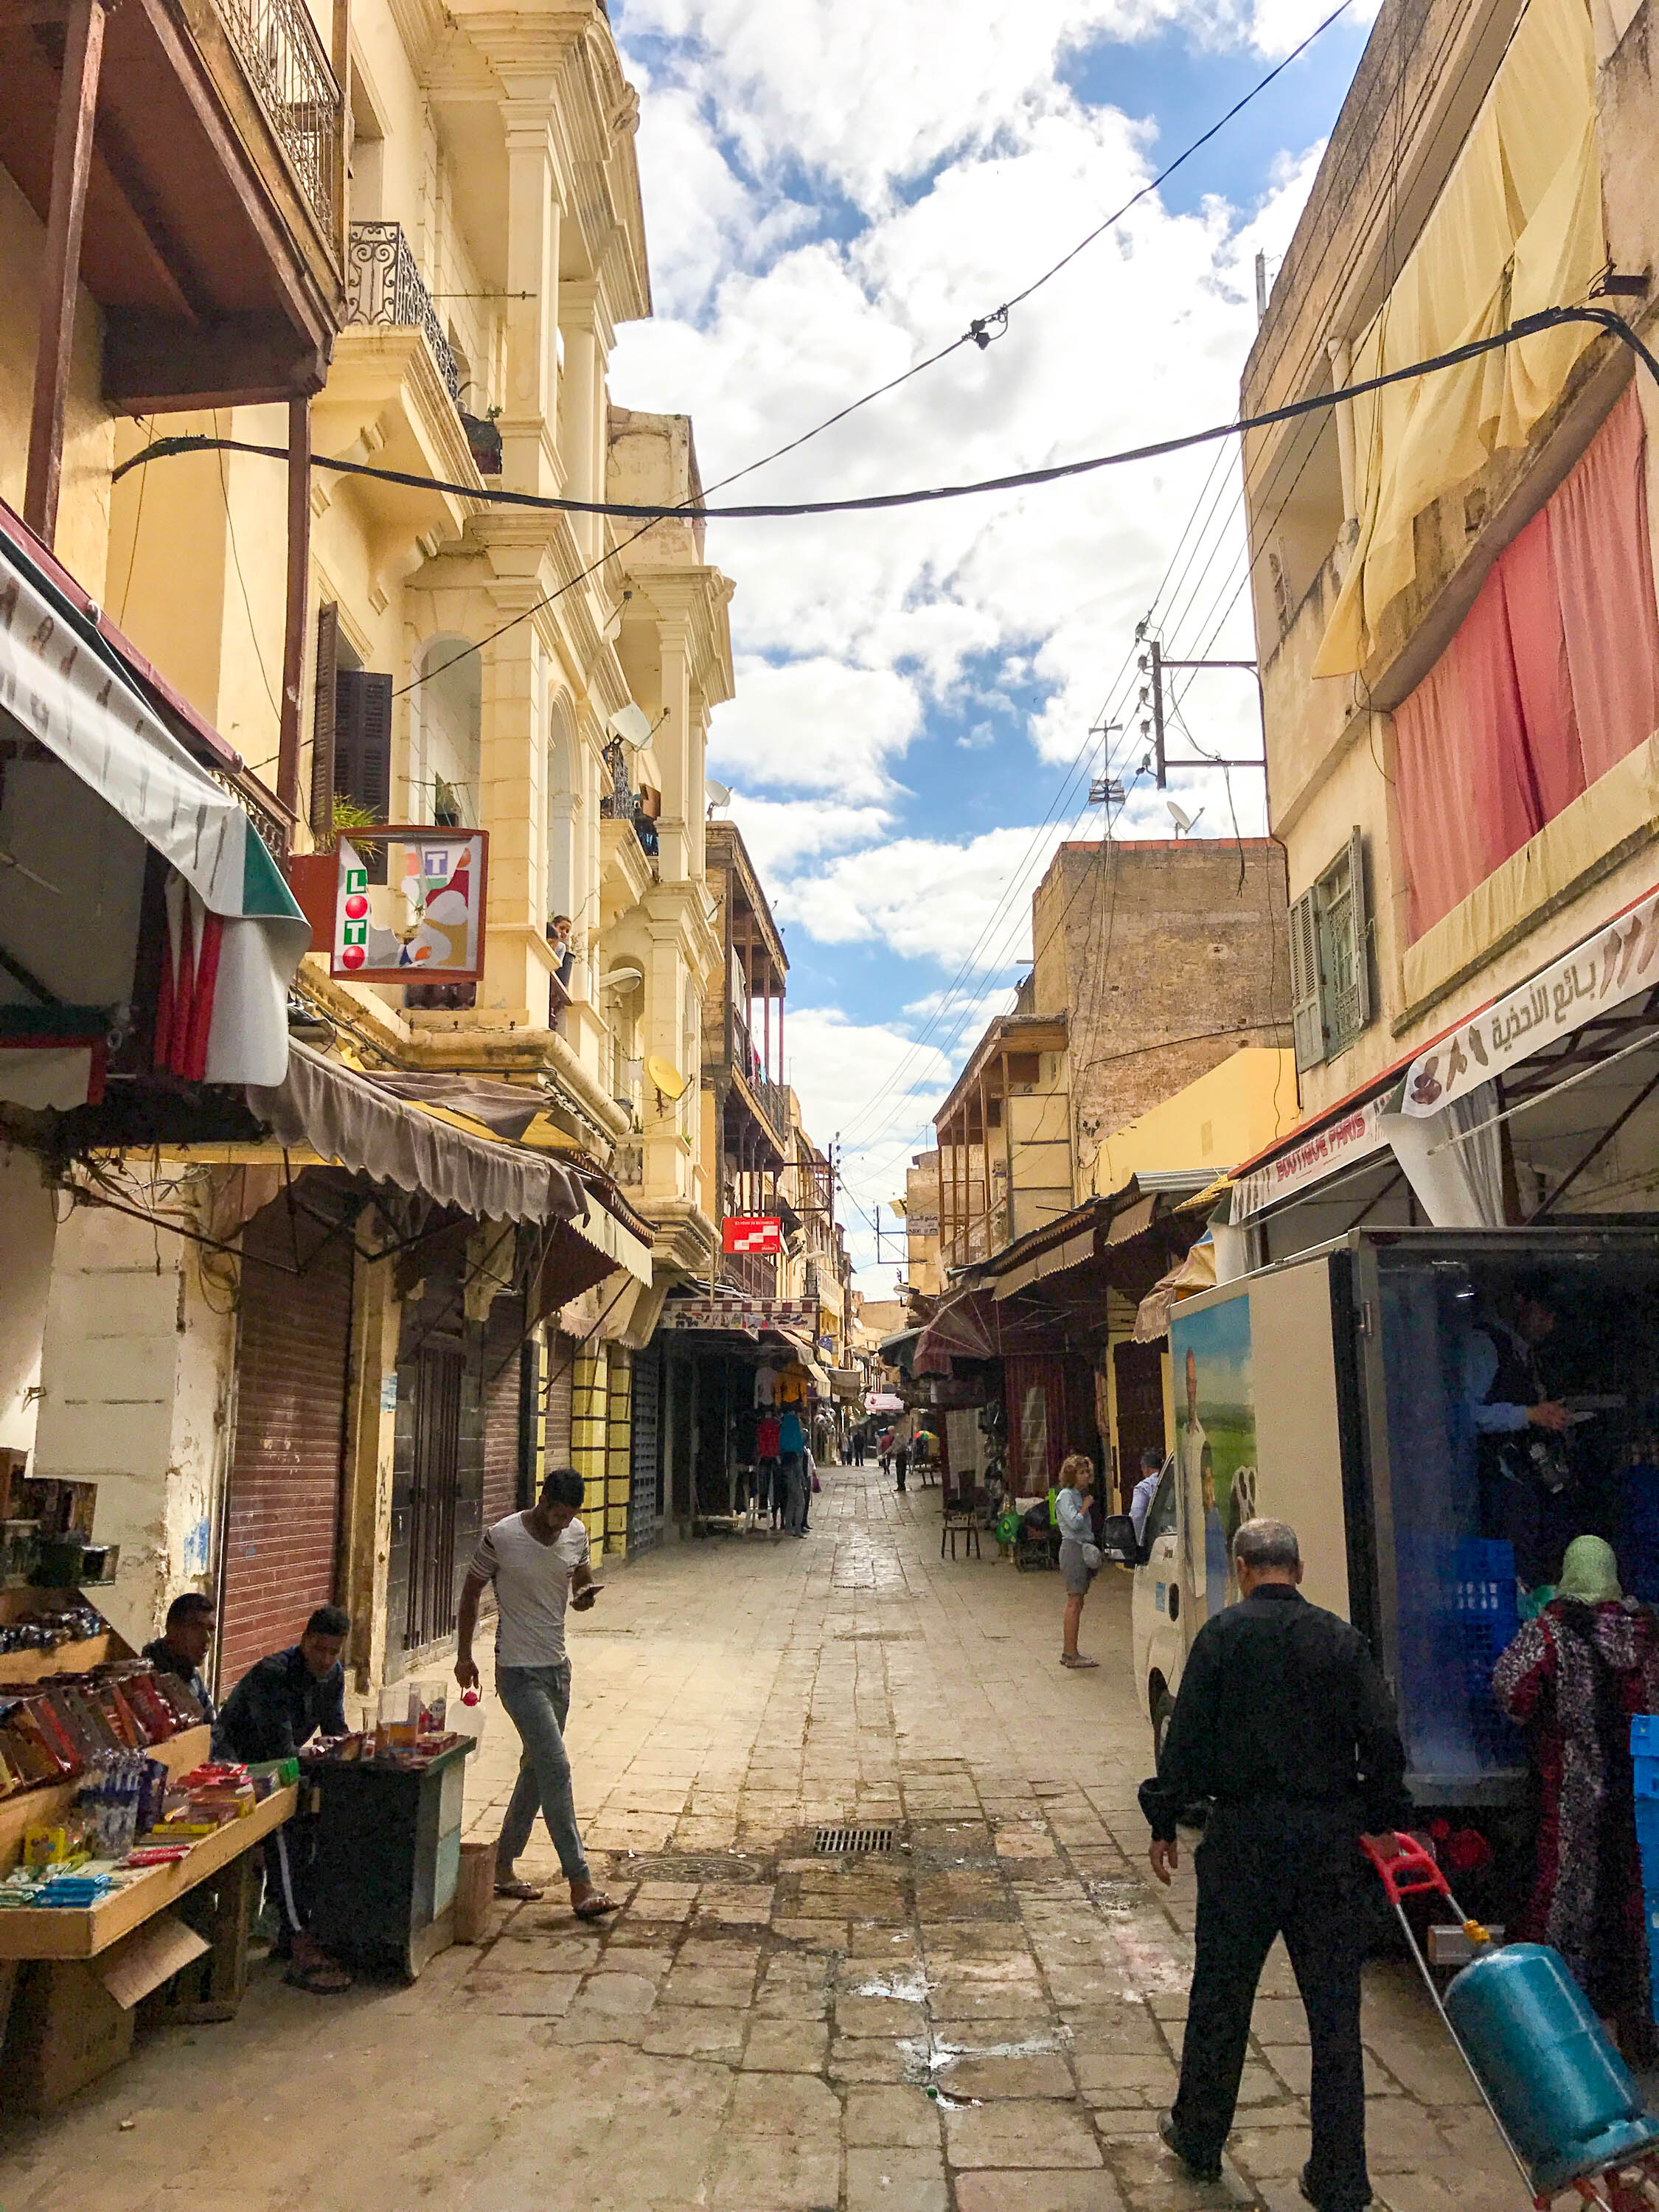 17 experiences in Morocco - Get Lost With Jackie